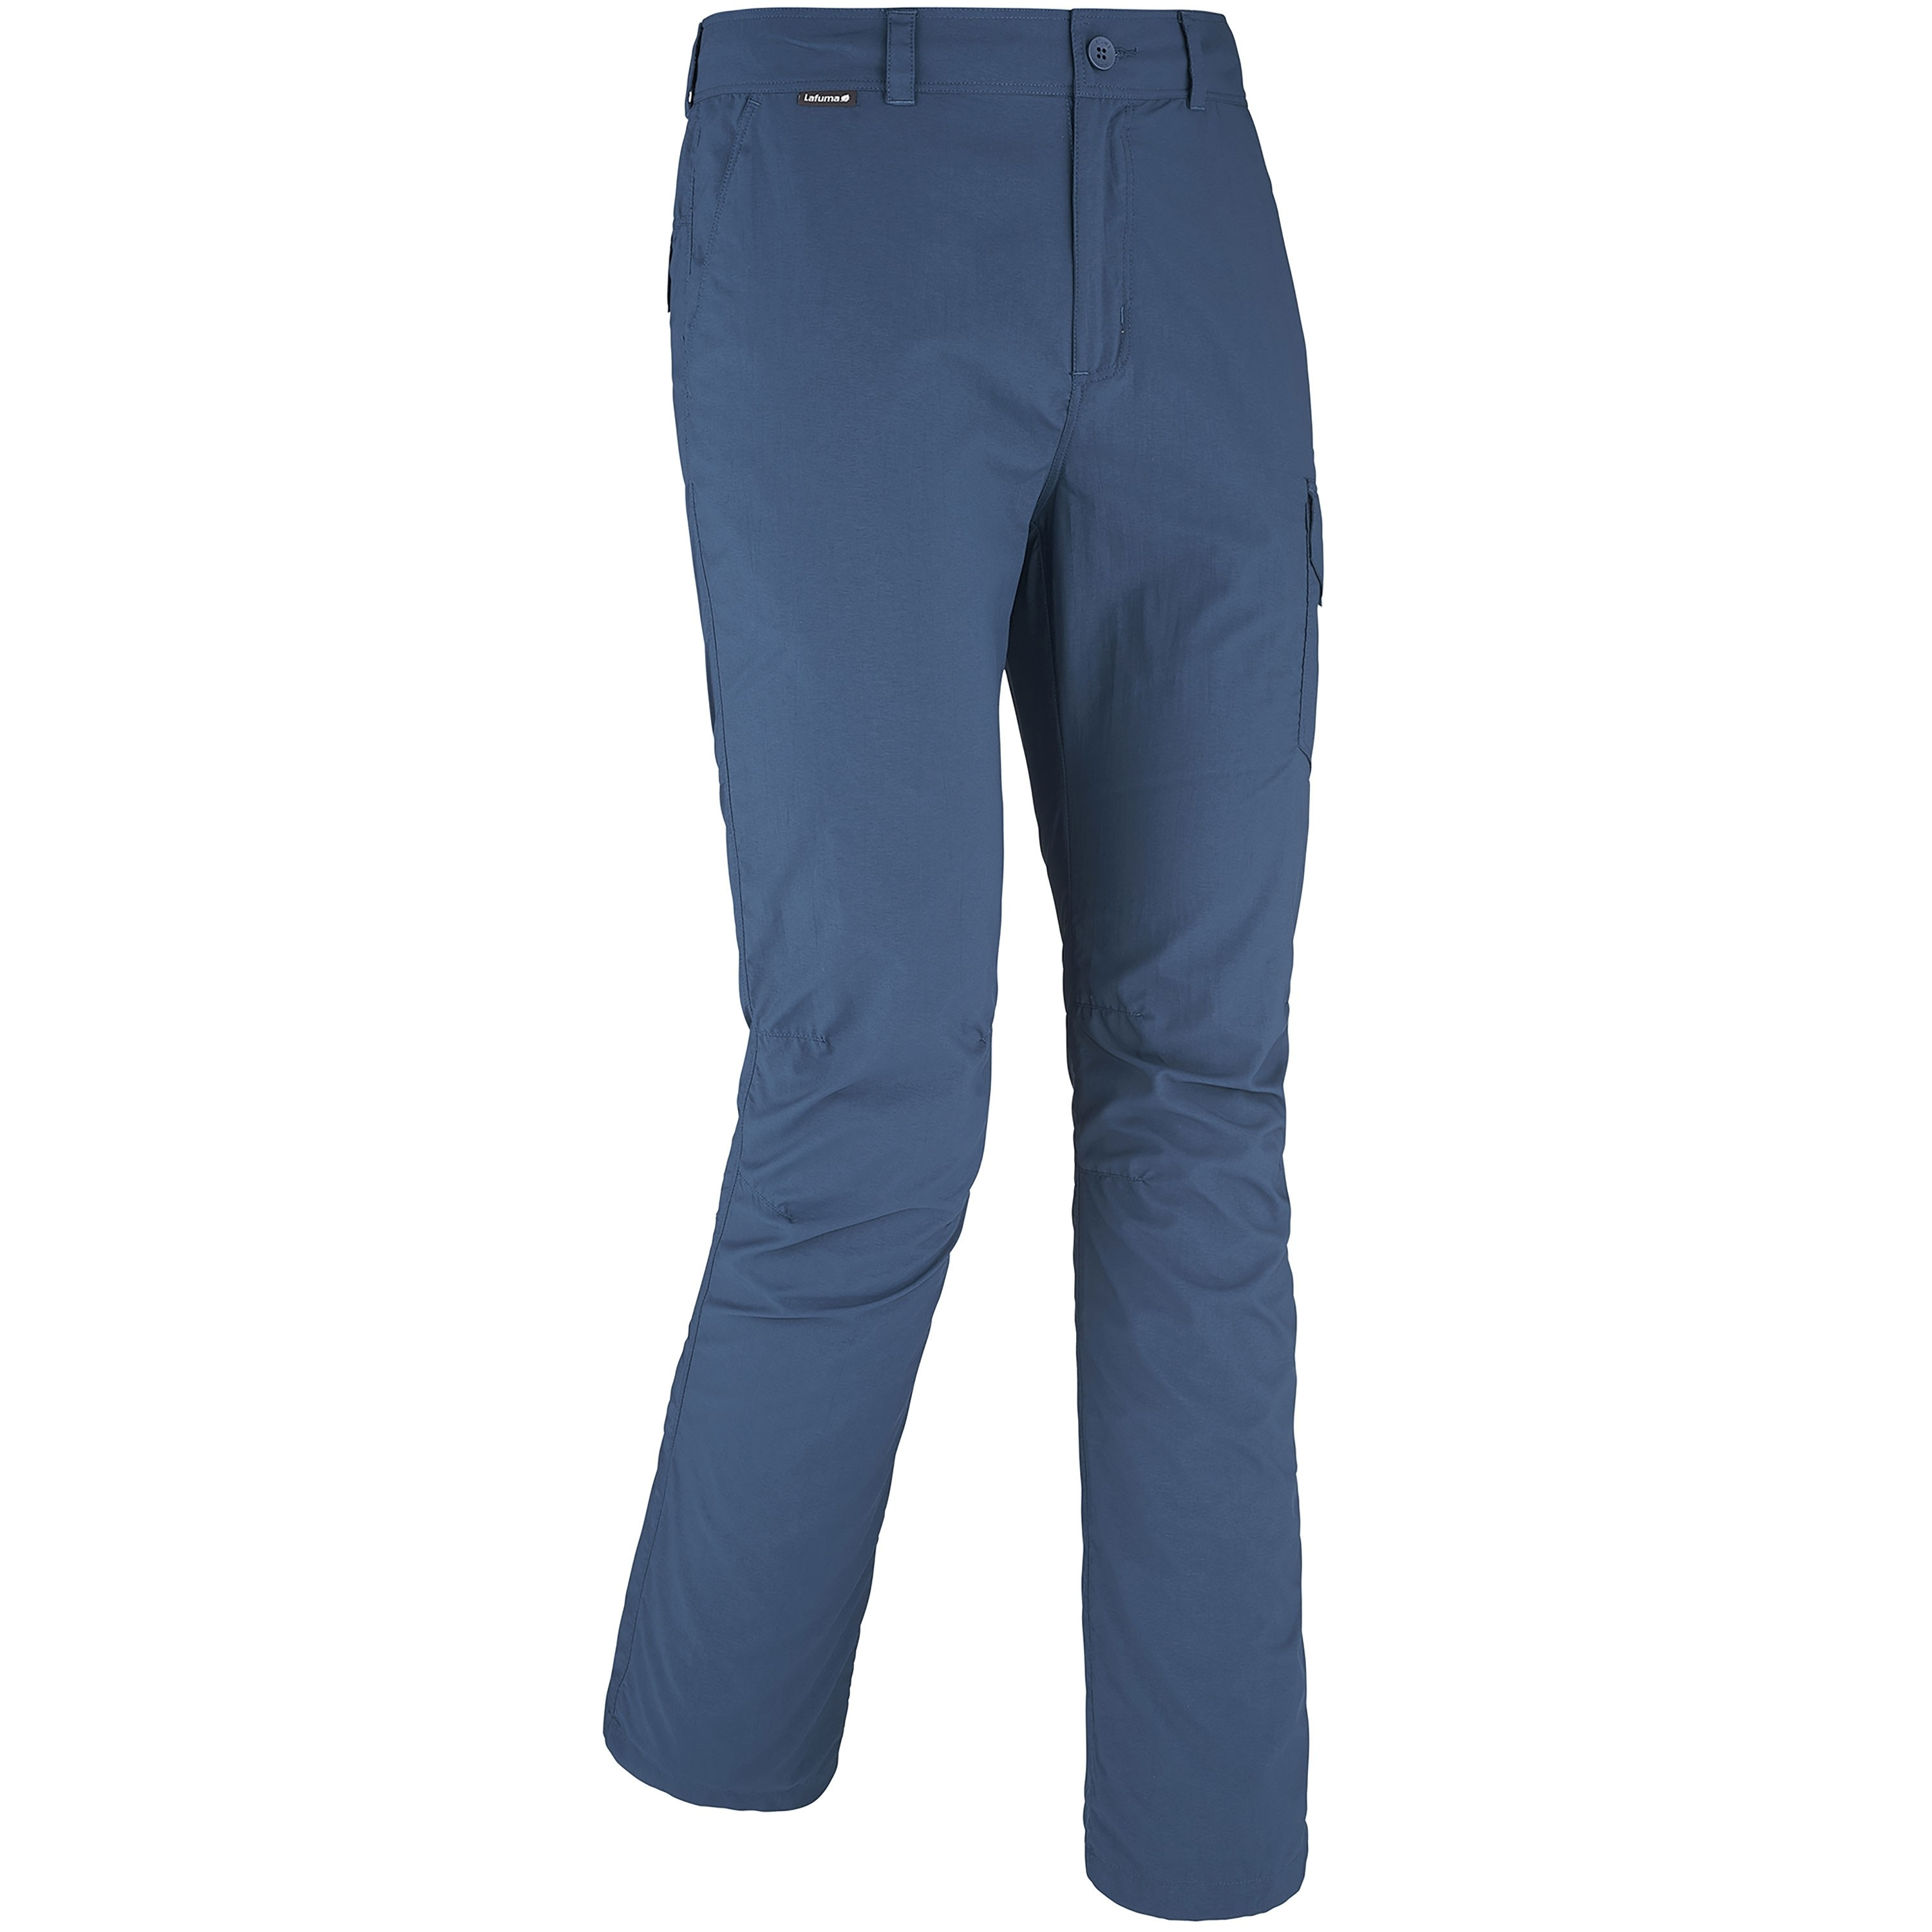 various design variety styles of 2019 high fashion ACCESS CARGO PANTS Blue